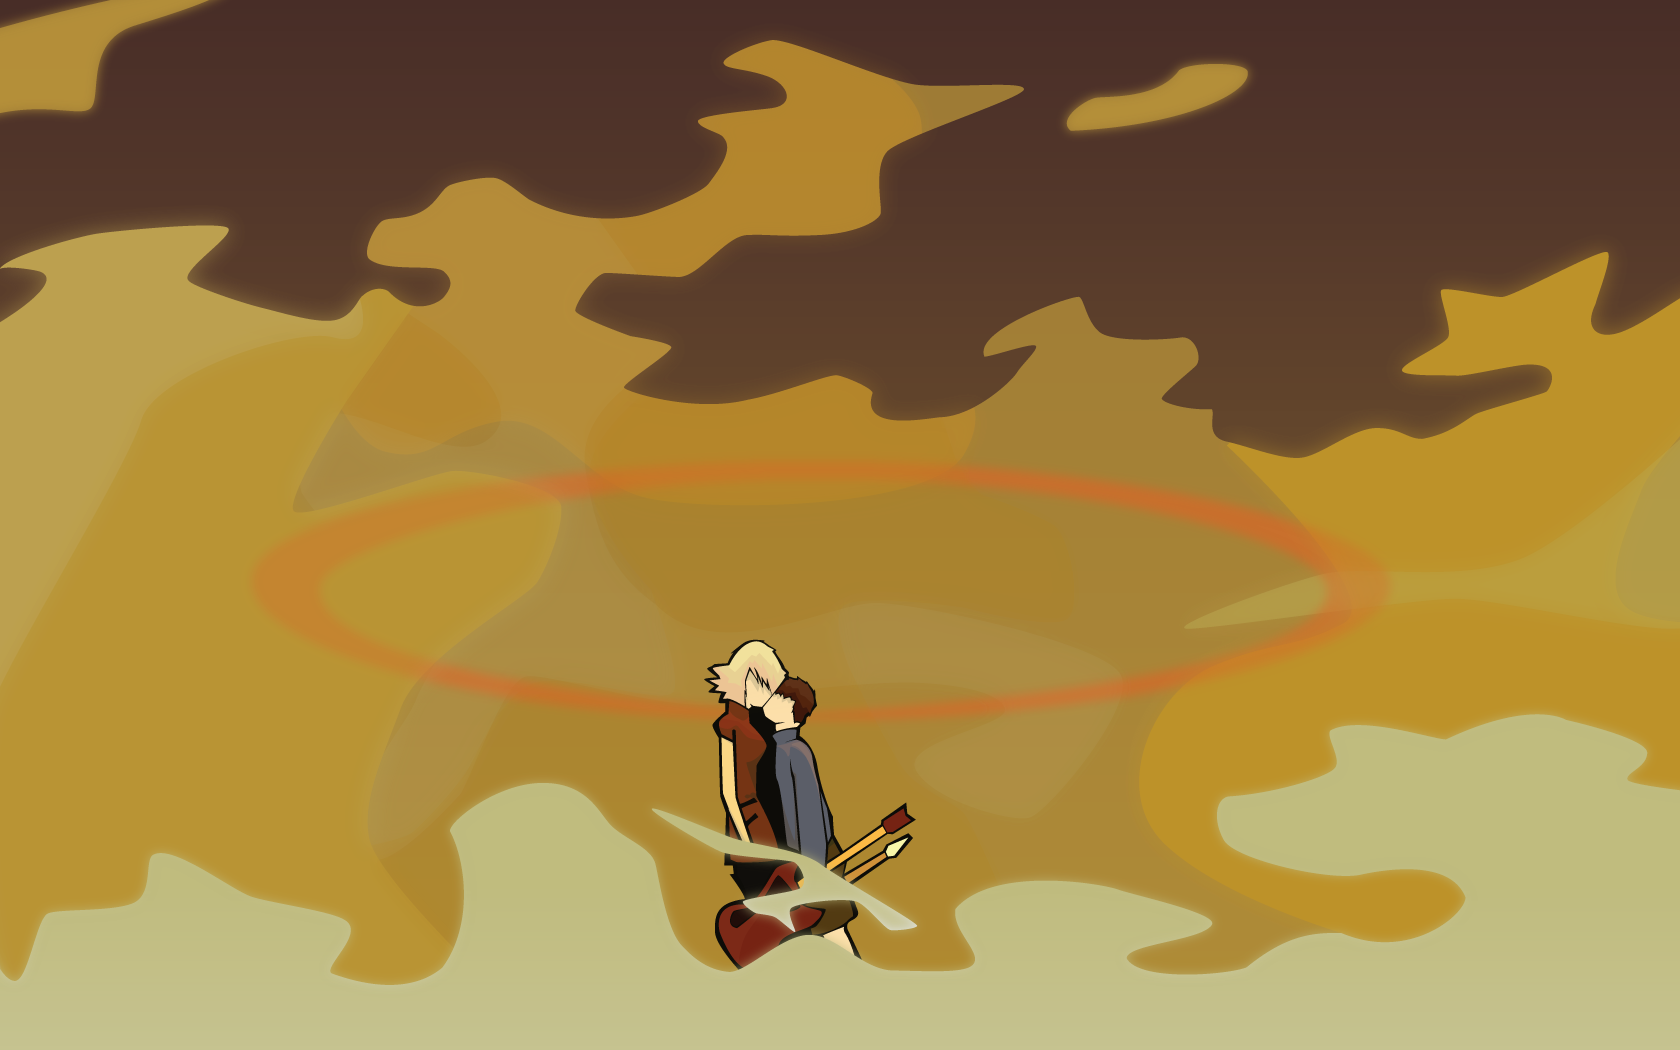 Flcl wallpaper and background image 1680x1050 id - Flcl wallpaper ...